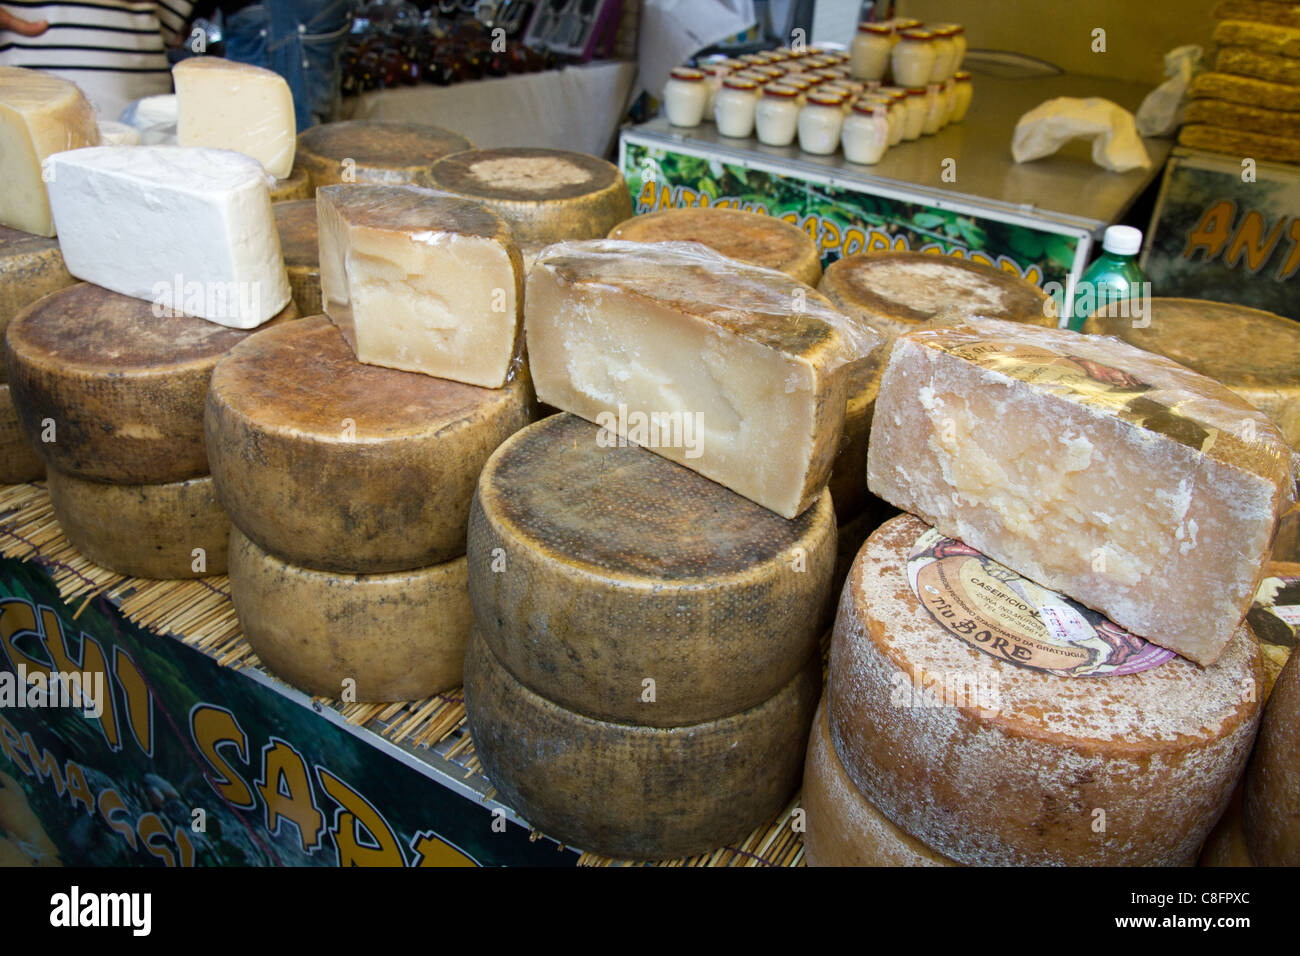 Traditional italian food cheese displayed in a stall Italy - Stock Image